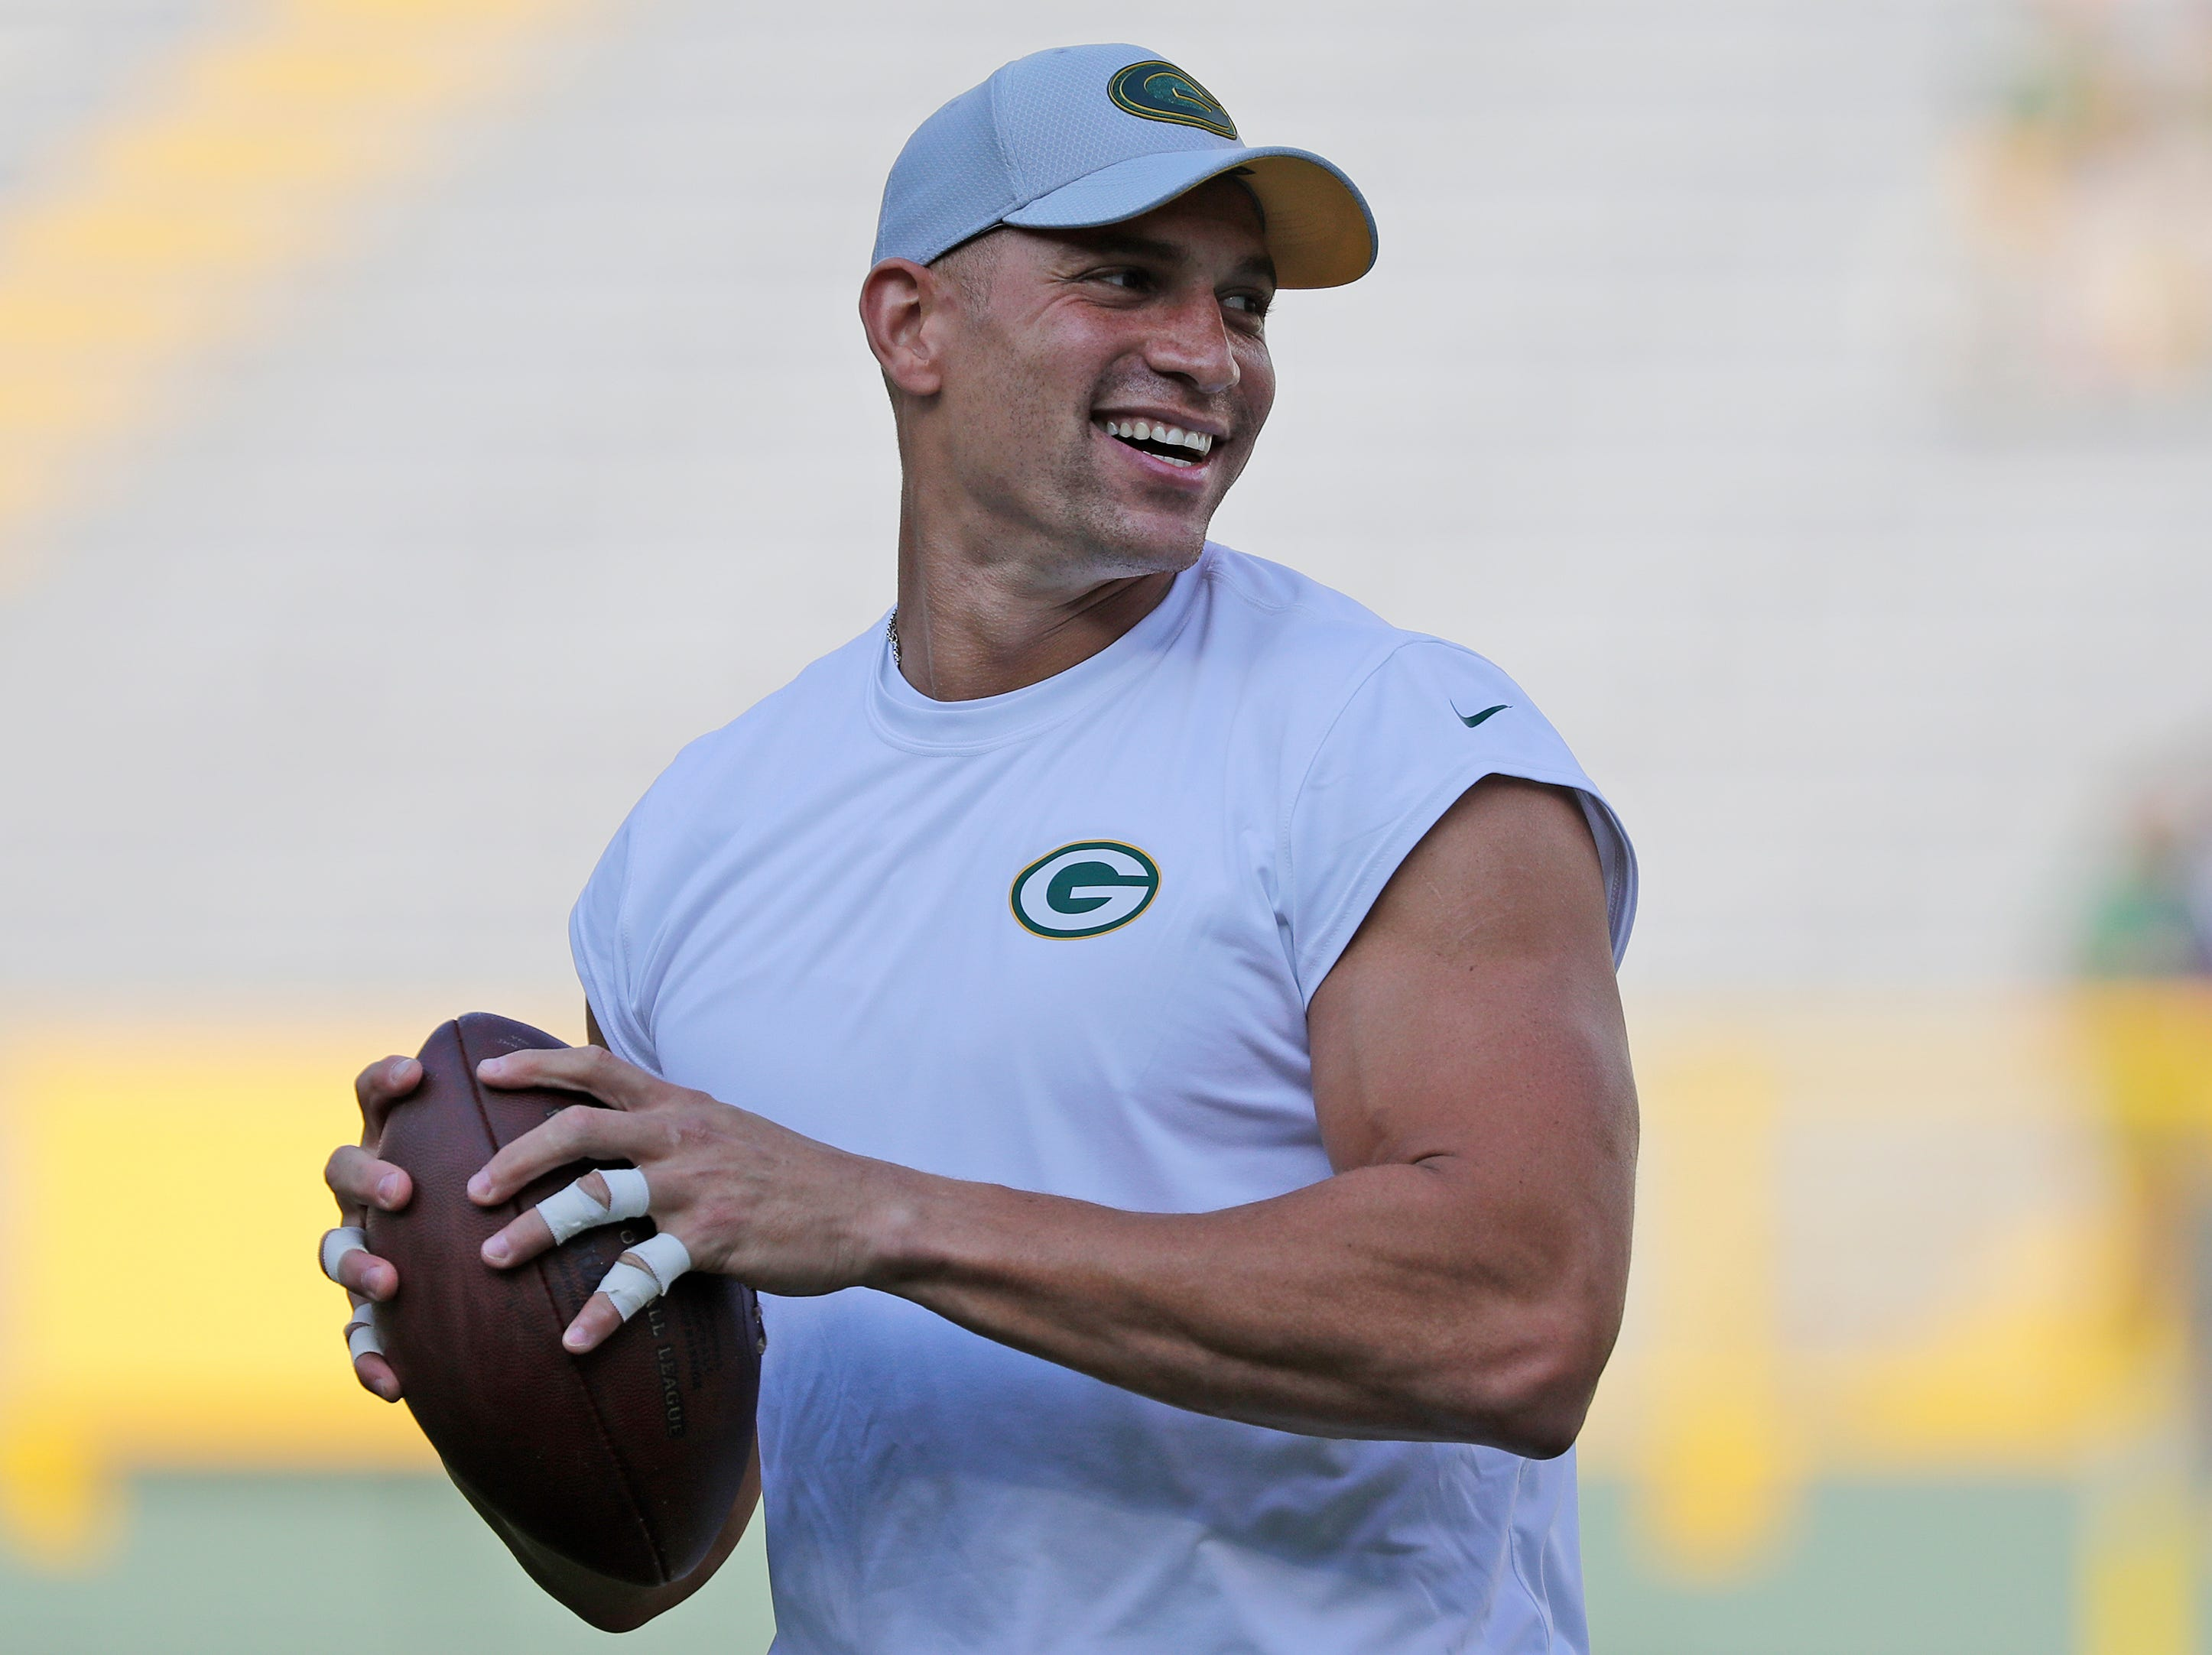 Green Bay Packers tight end Jimmy Graham (80) warms up before a NFL preseason game at Lambeau Field on Thursday, August 9, 2018 in Green Bay, Wis.